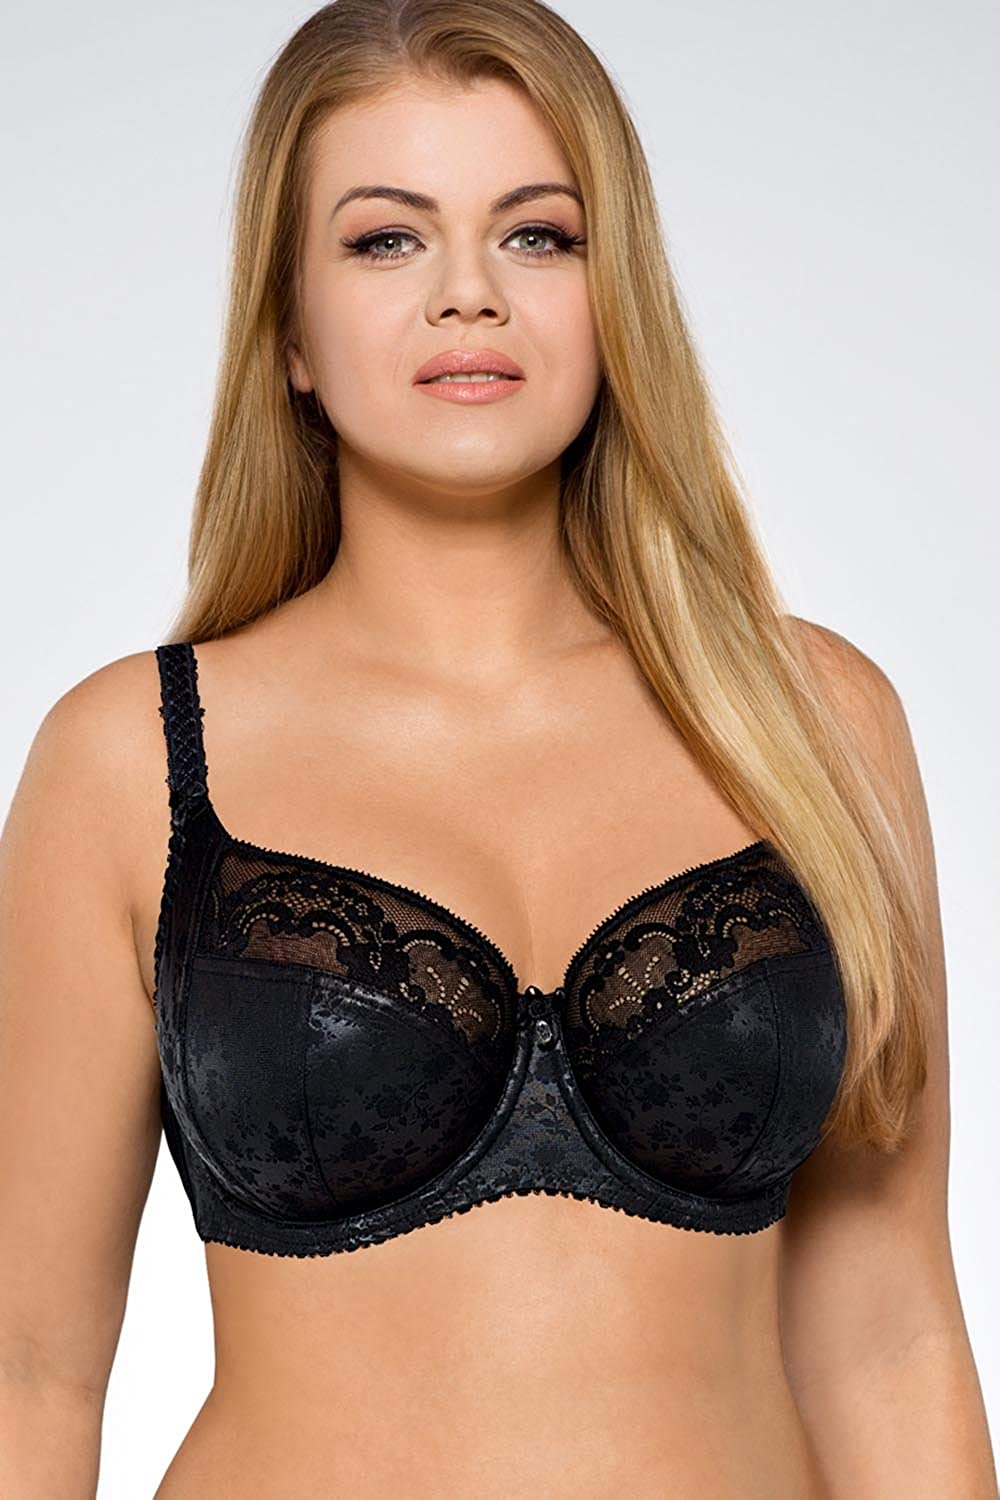 Ava 1130 Underwired Non Padded Bra Full Cup Floral Lace Ladies Lingerie